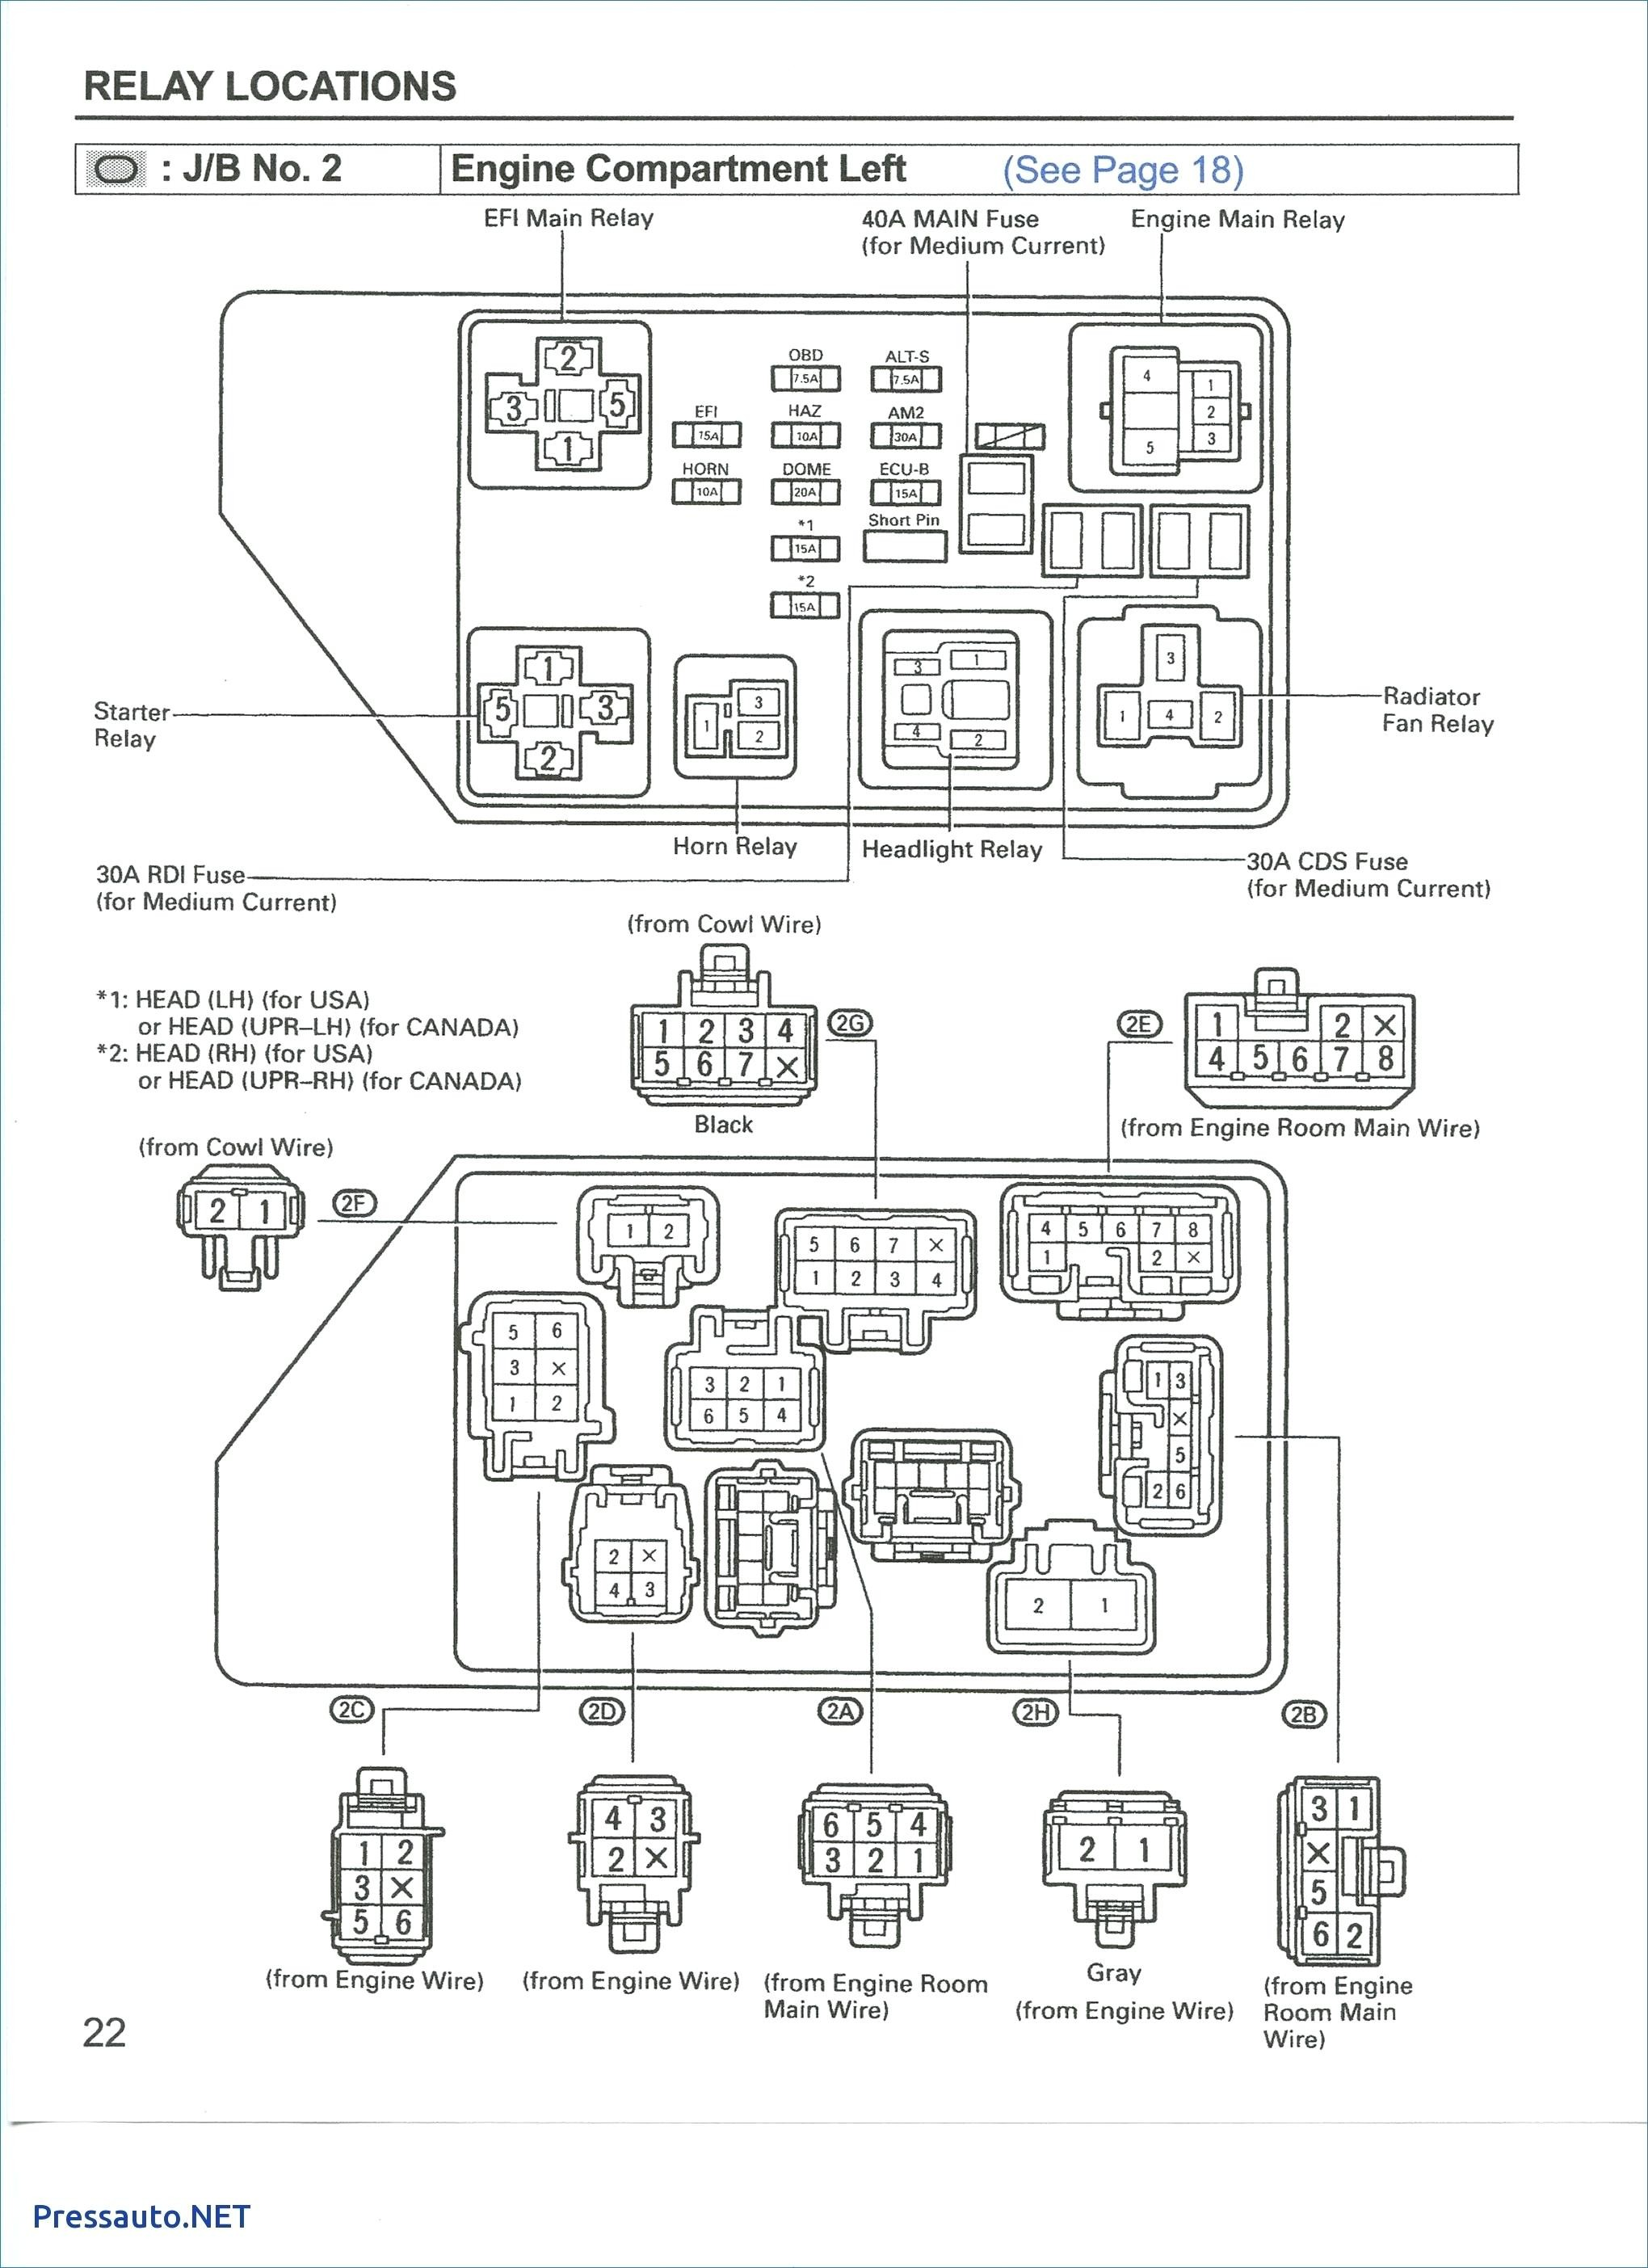 Toyota Celica Engine Diagram 1991 toyota Mr2 Fuse Box Wiring Diagram Of Toyota Celica Engine Diagram